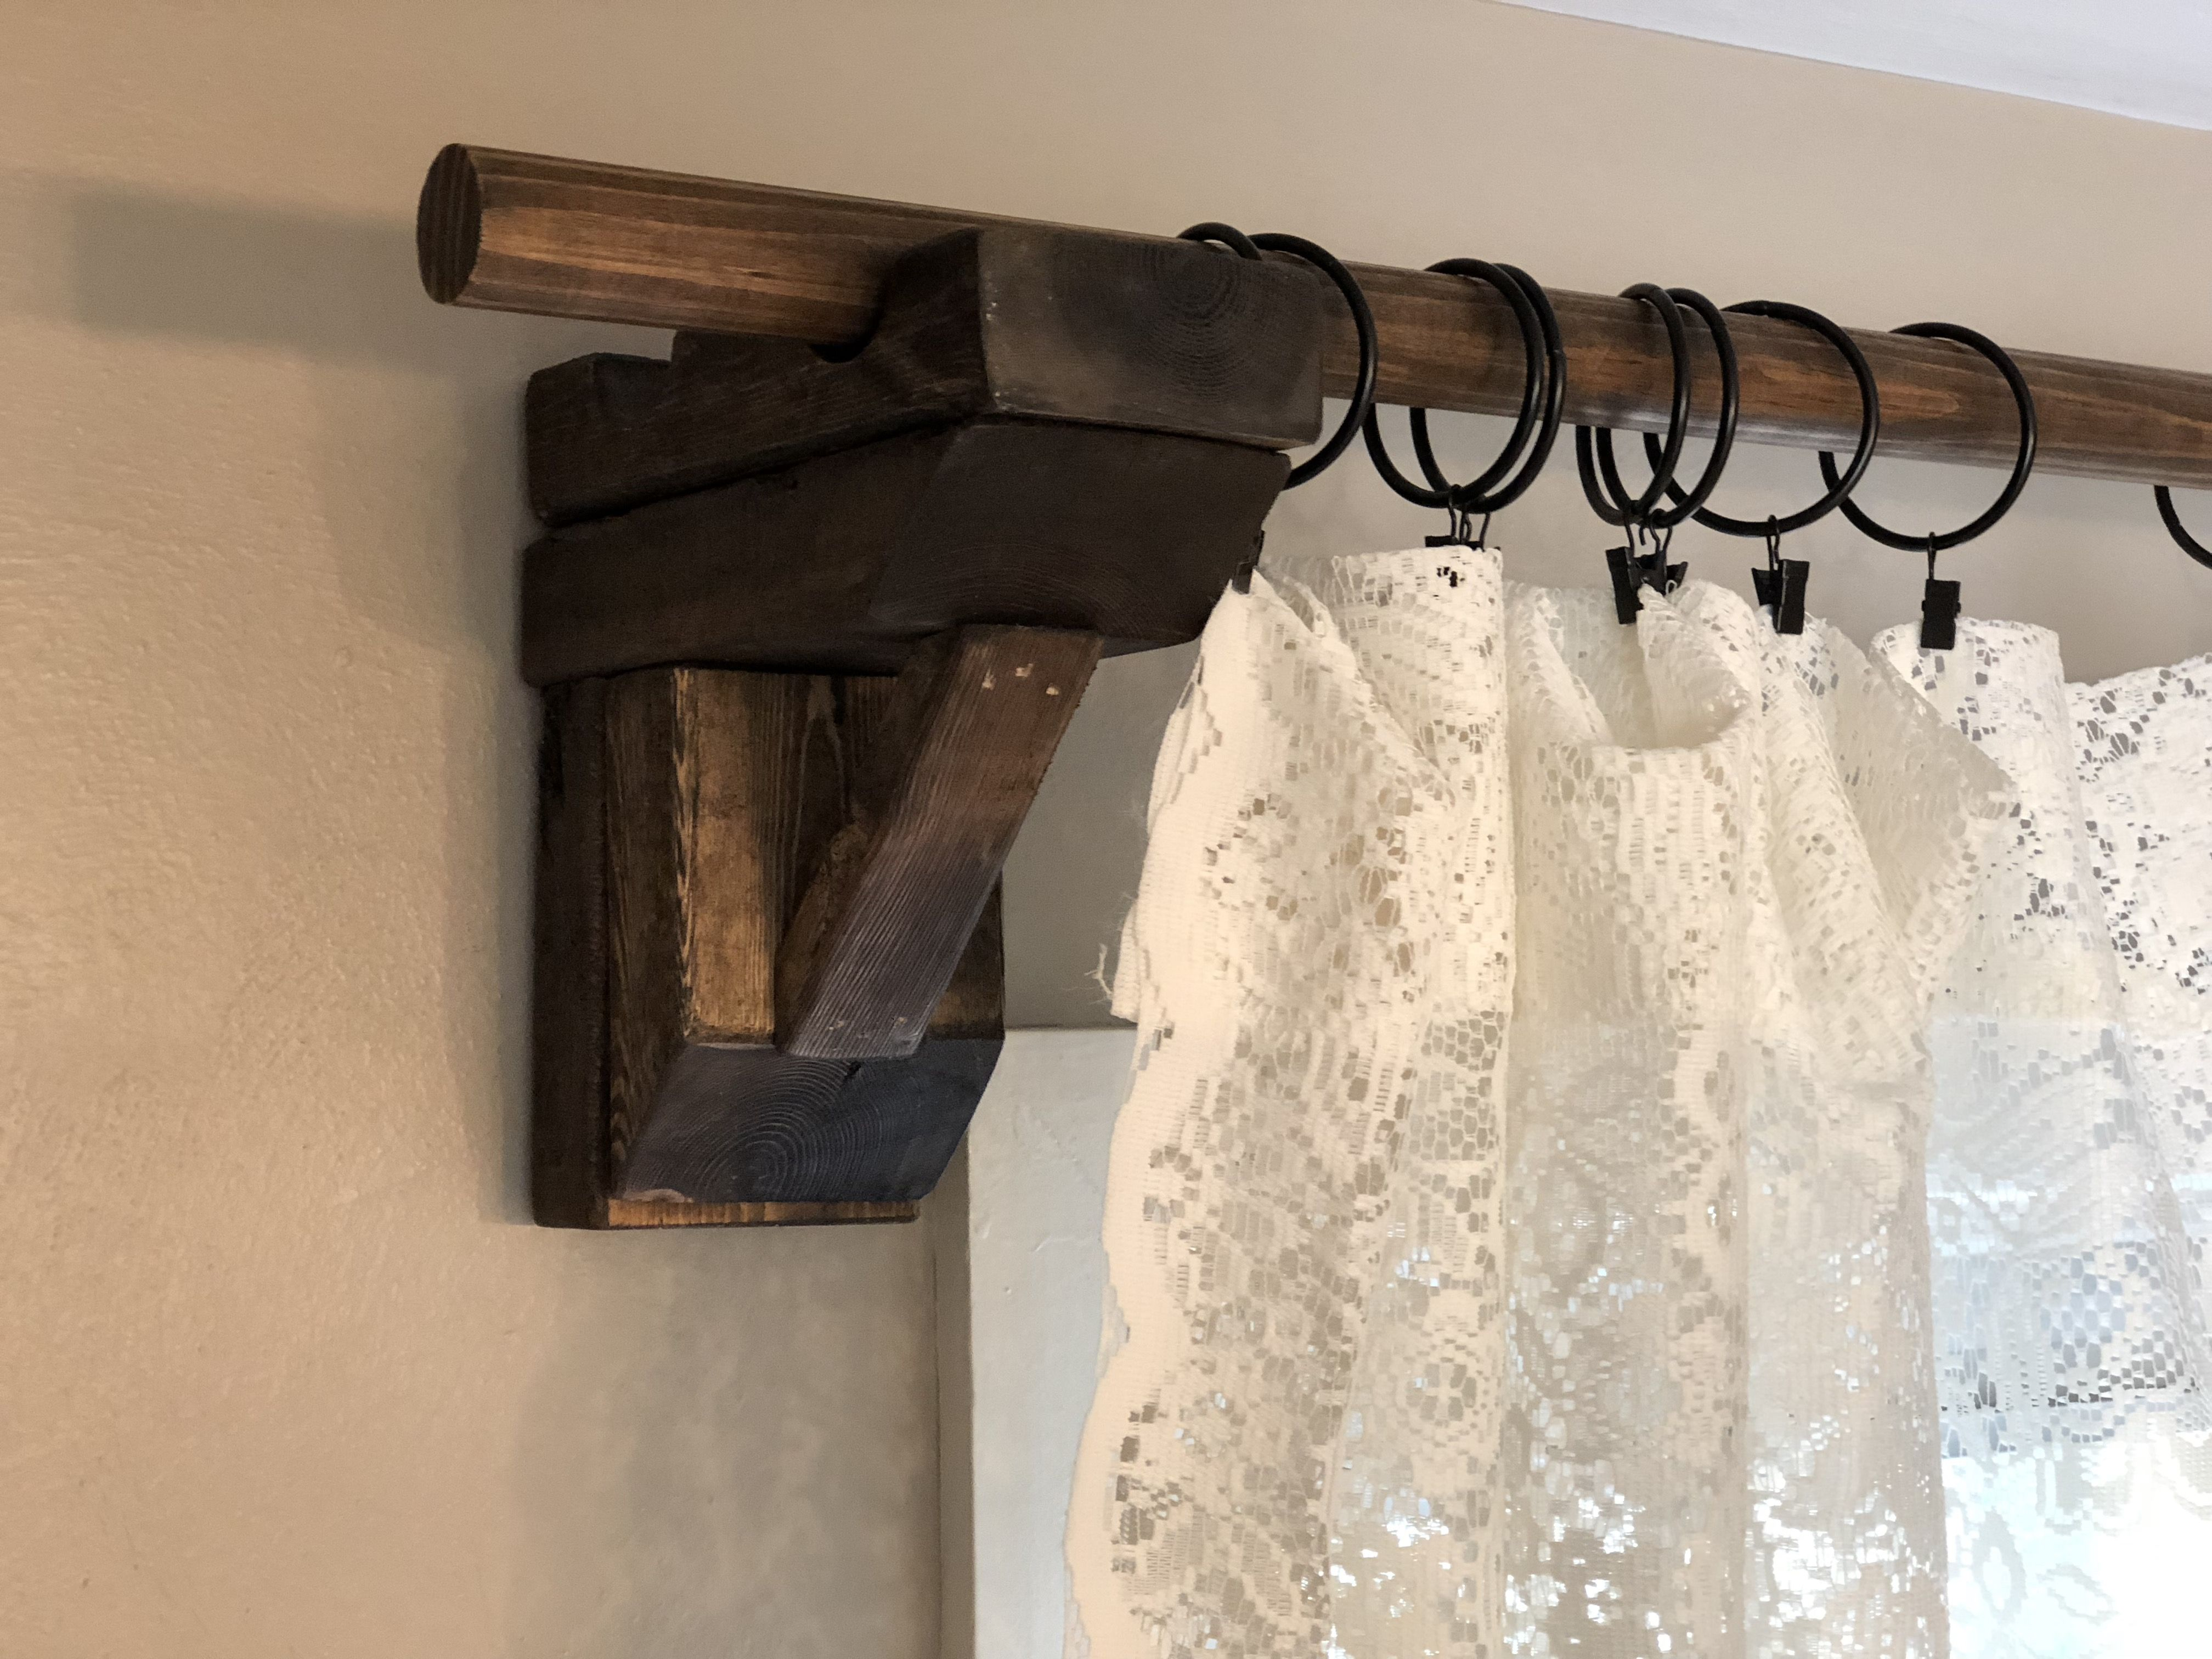 Diy Rustic Chunky Corbel Curtain Rod Holders A Moment Of